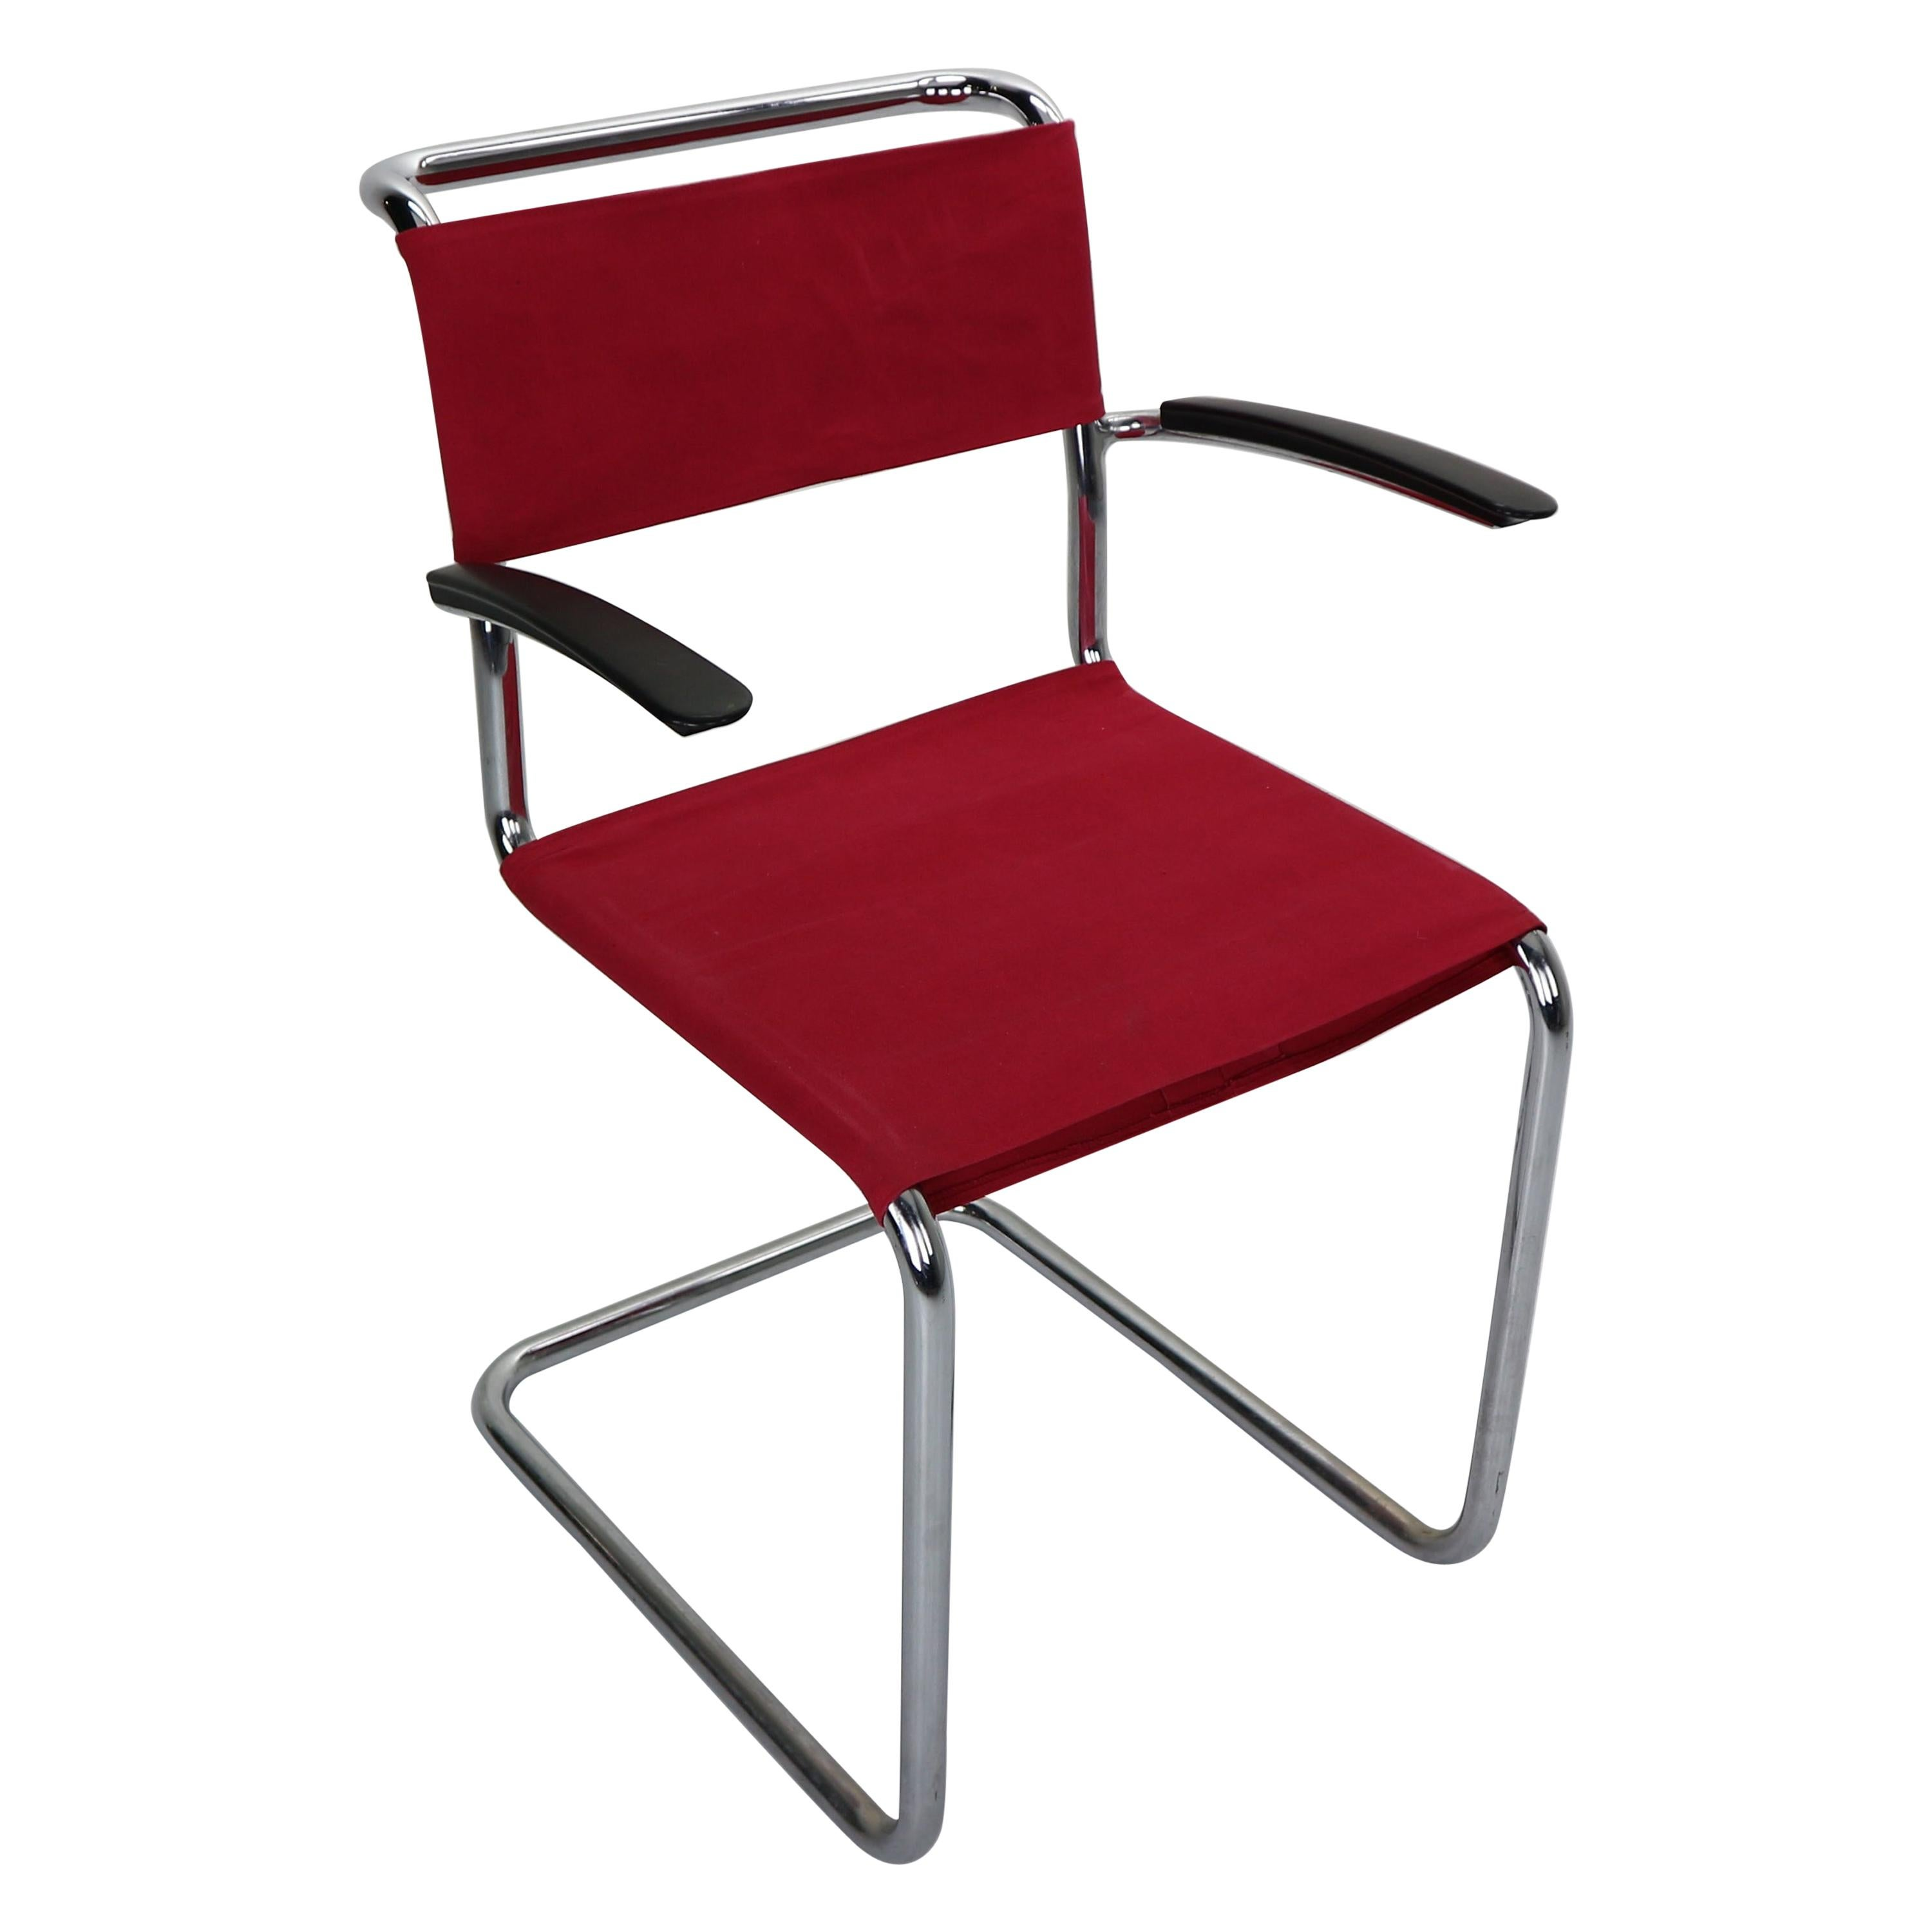 Armrest Chair in Red Canvas No-204 by W.H. Gispen, for Gispen Culemborg, 1930s